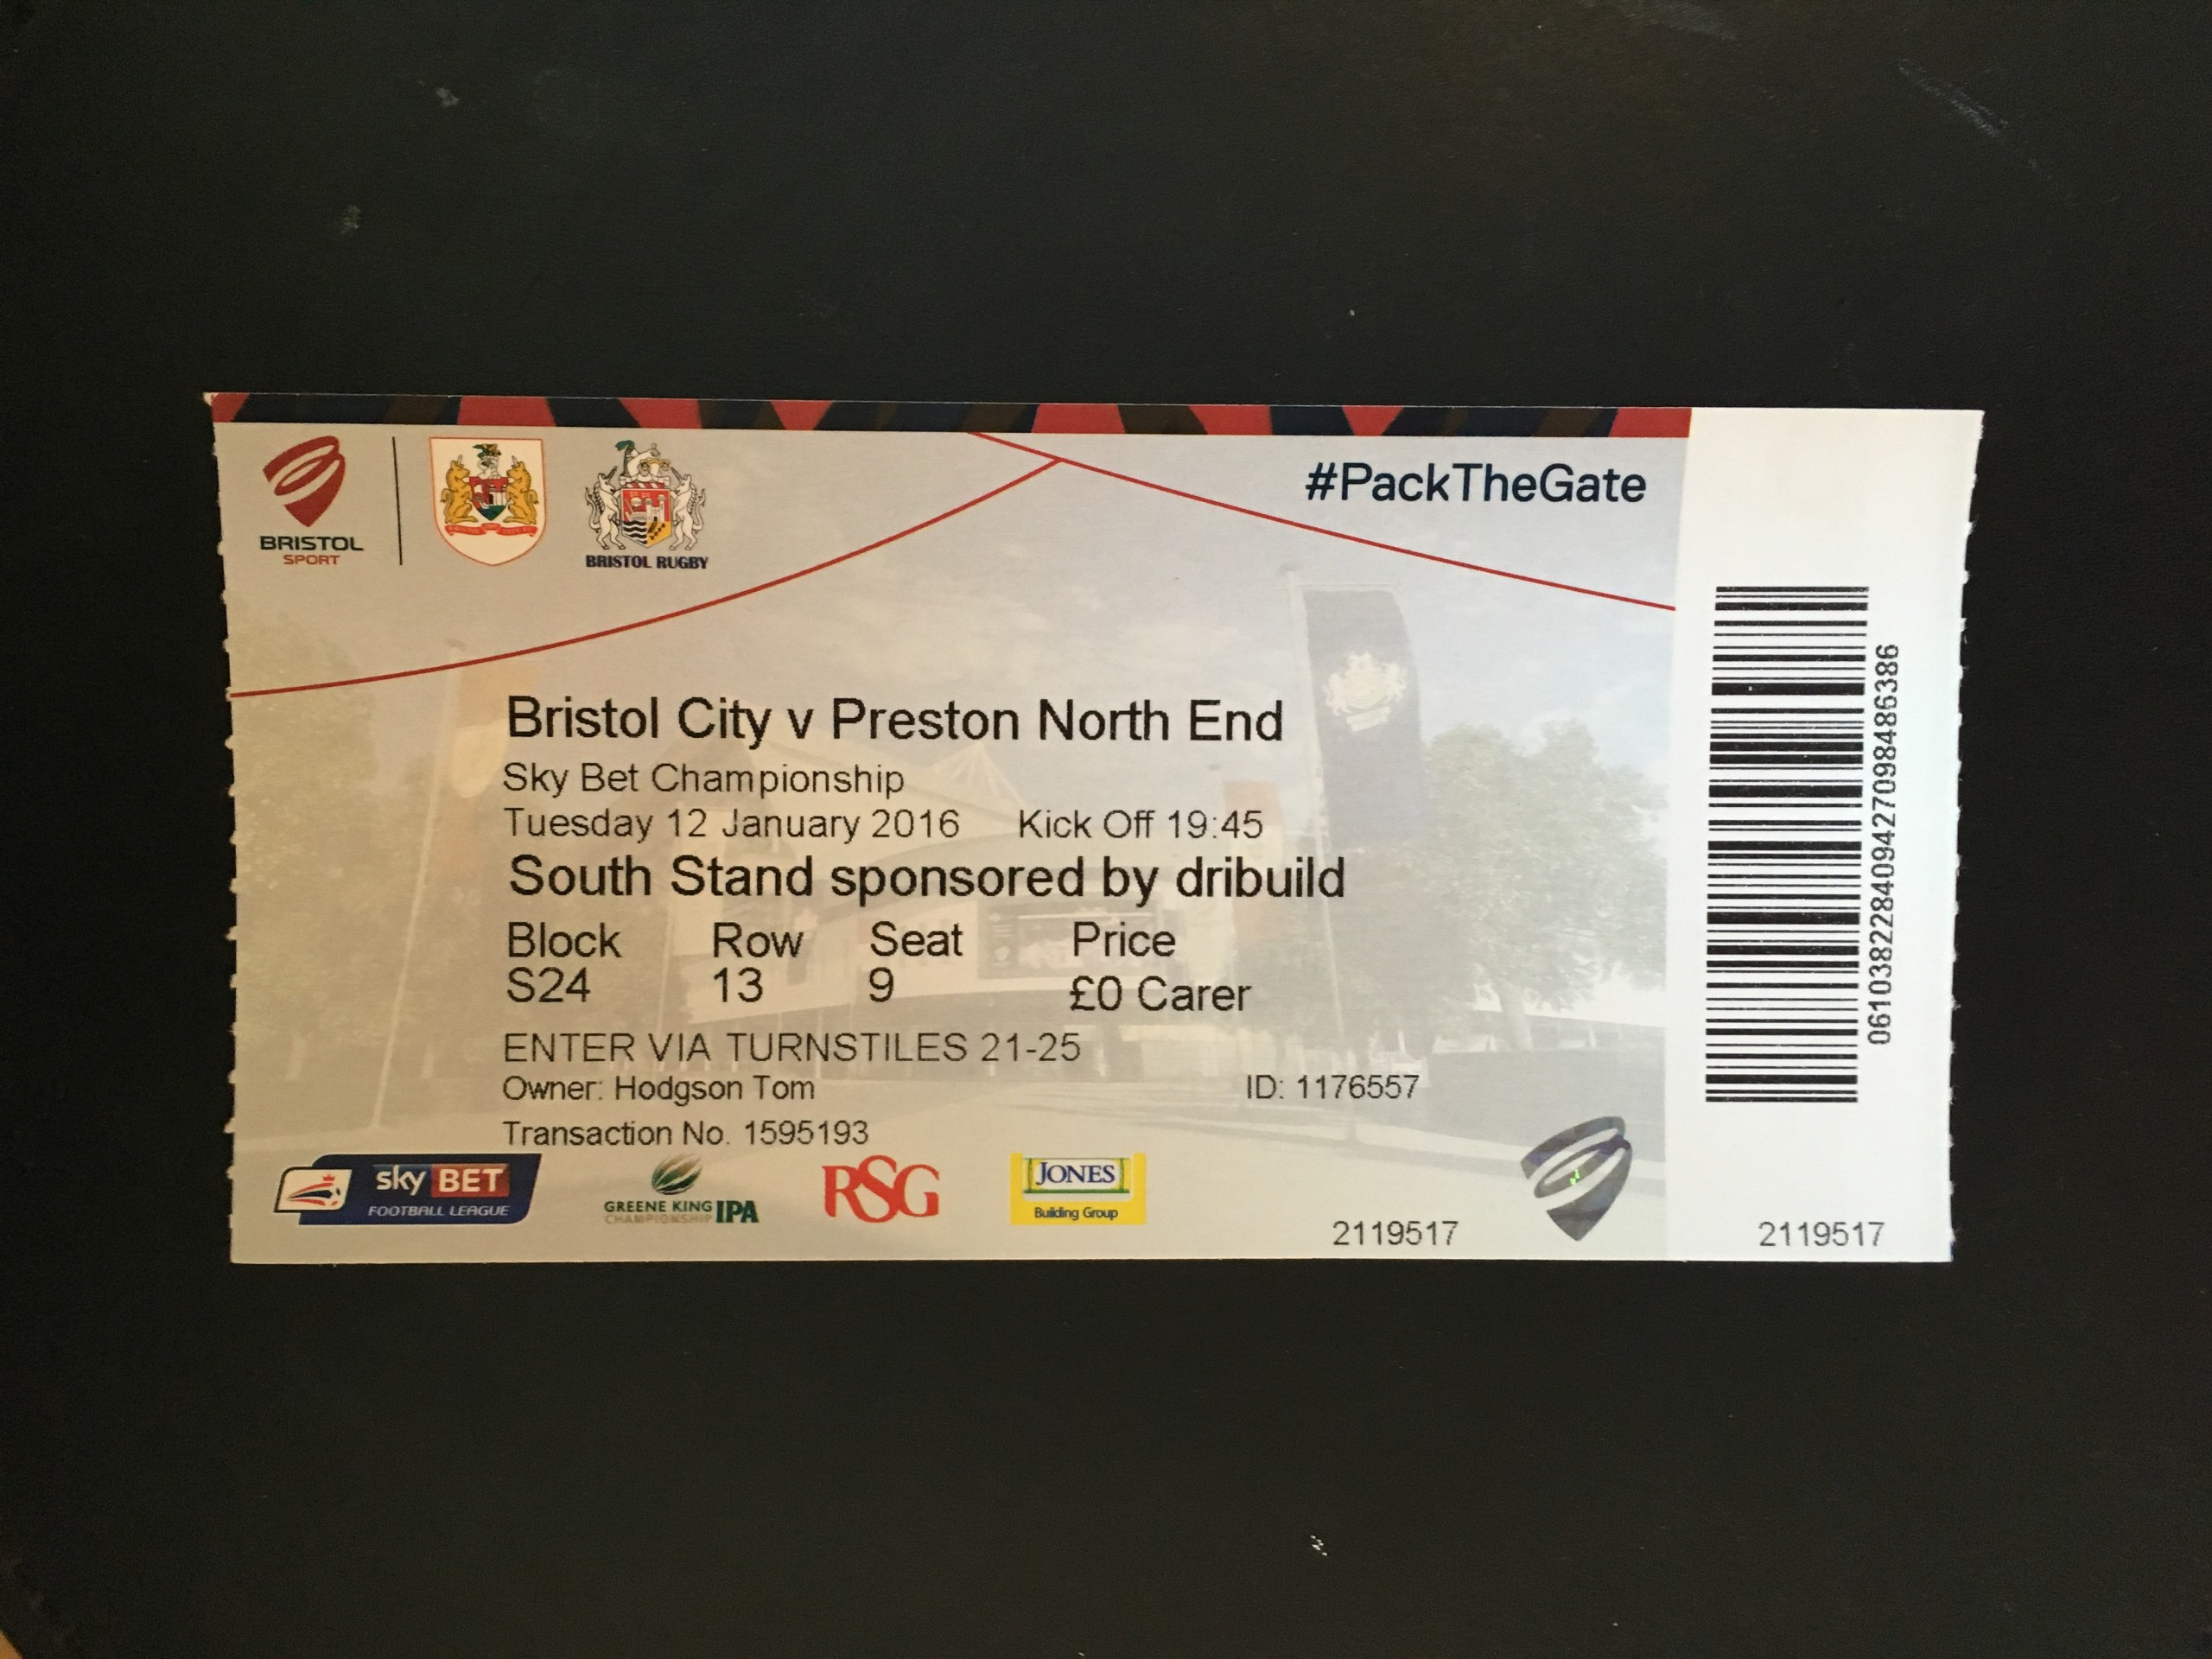 Bristol City v Preston North End 12-01-2016 Ticket